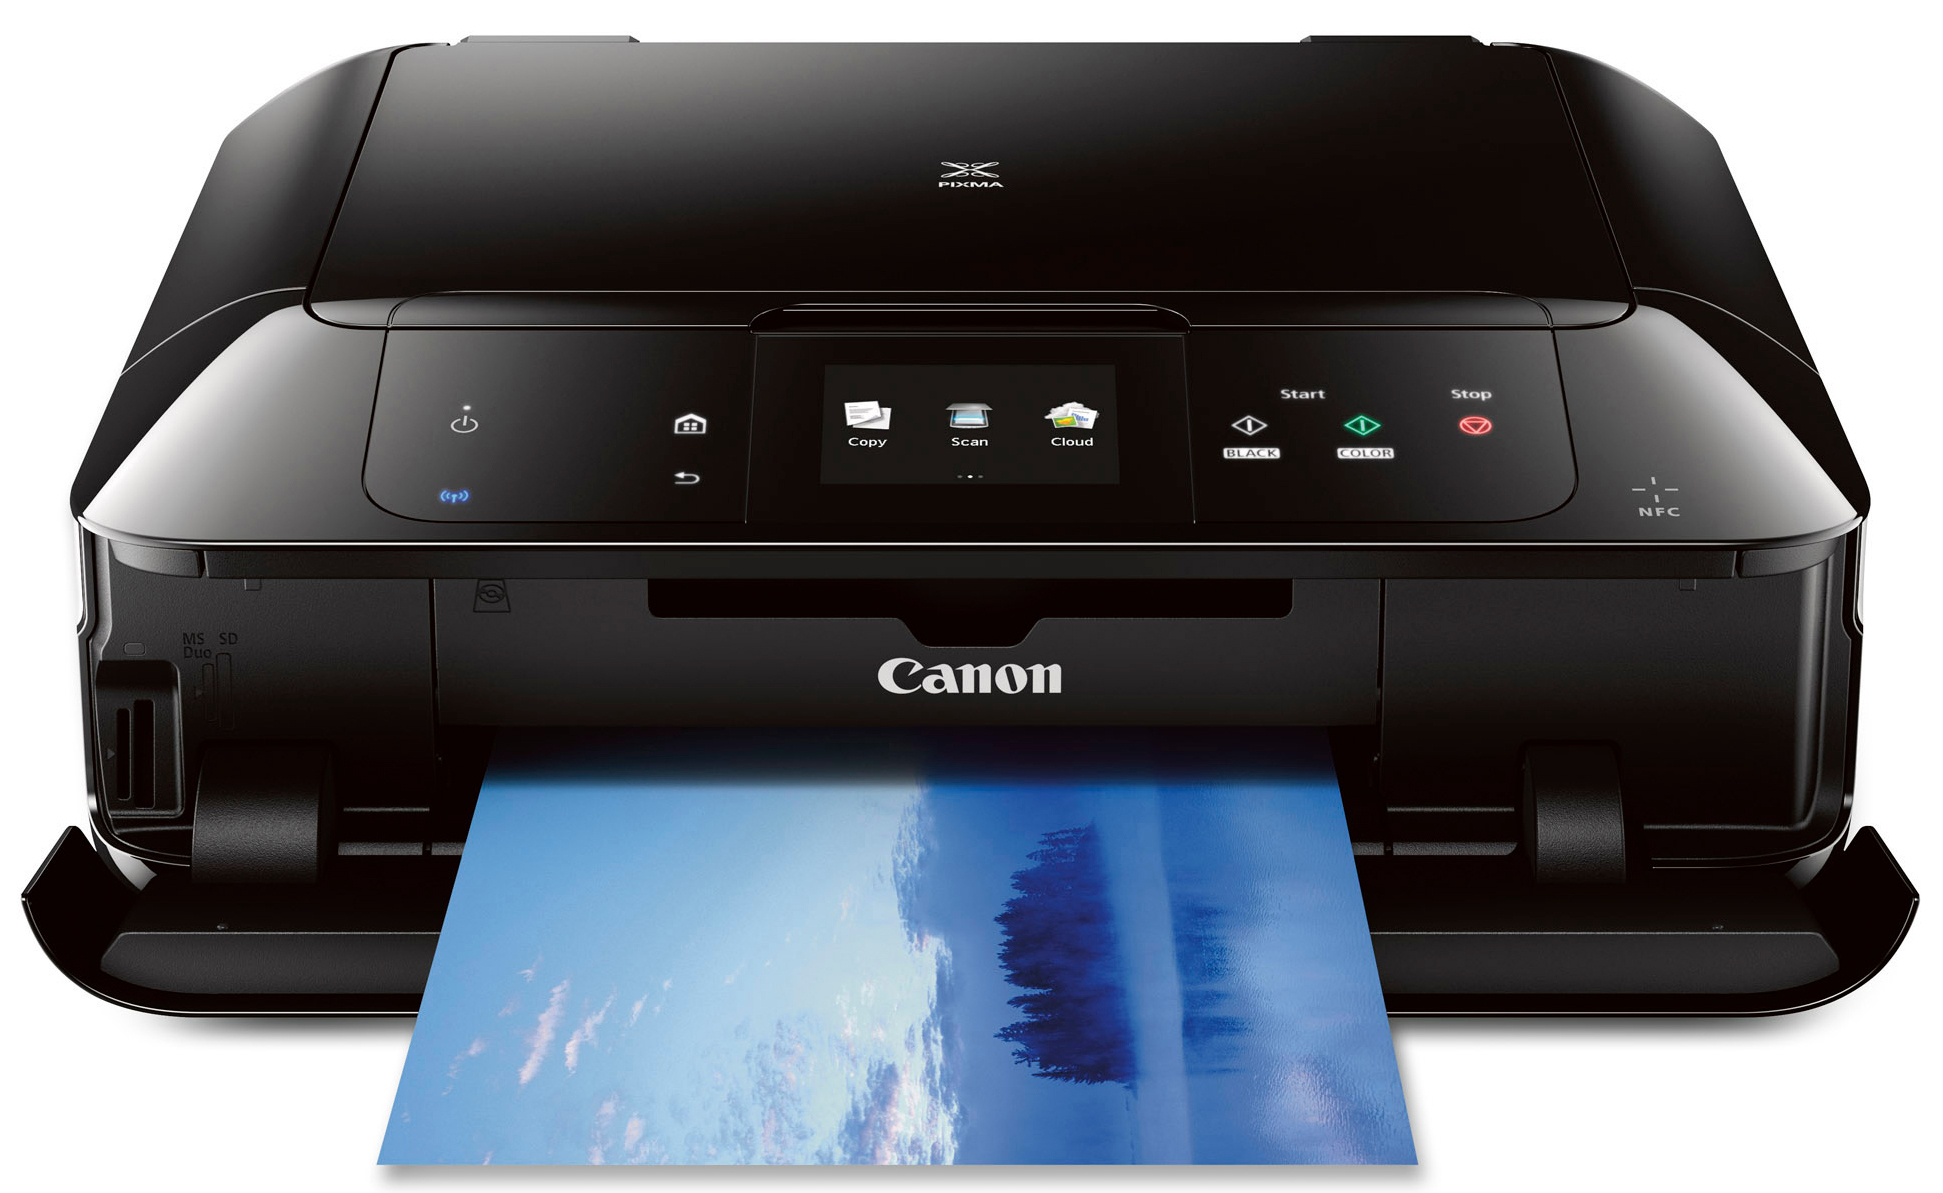 Canon Wireless Photo All-in-One Inkjet Printer w/ AirPrint + Adobe Photoshop Elements 12 $95 shipped ($239 value)